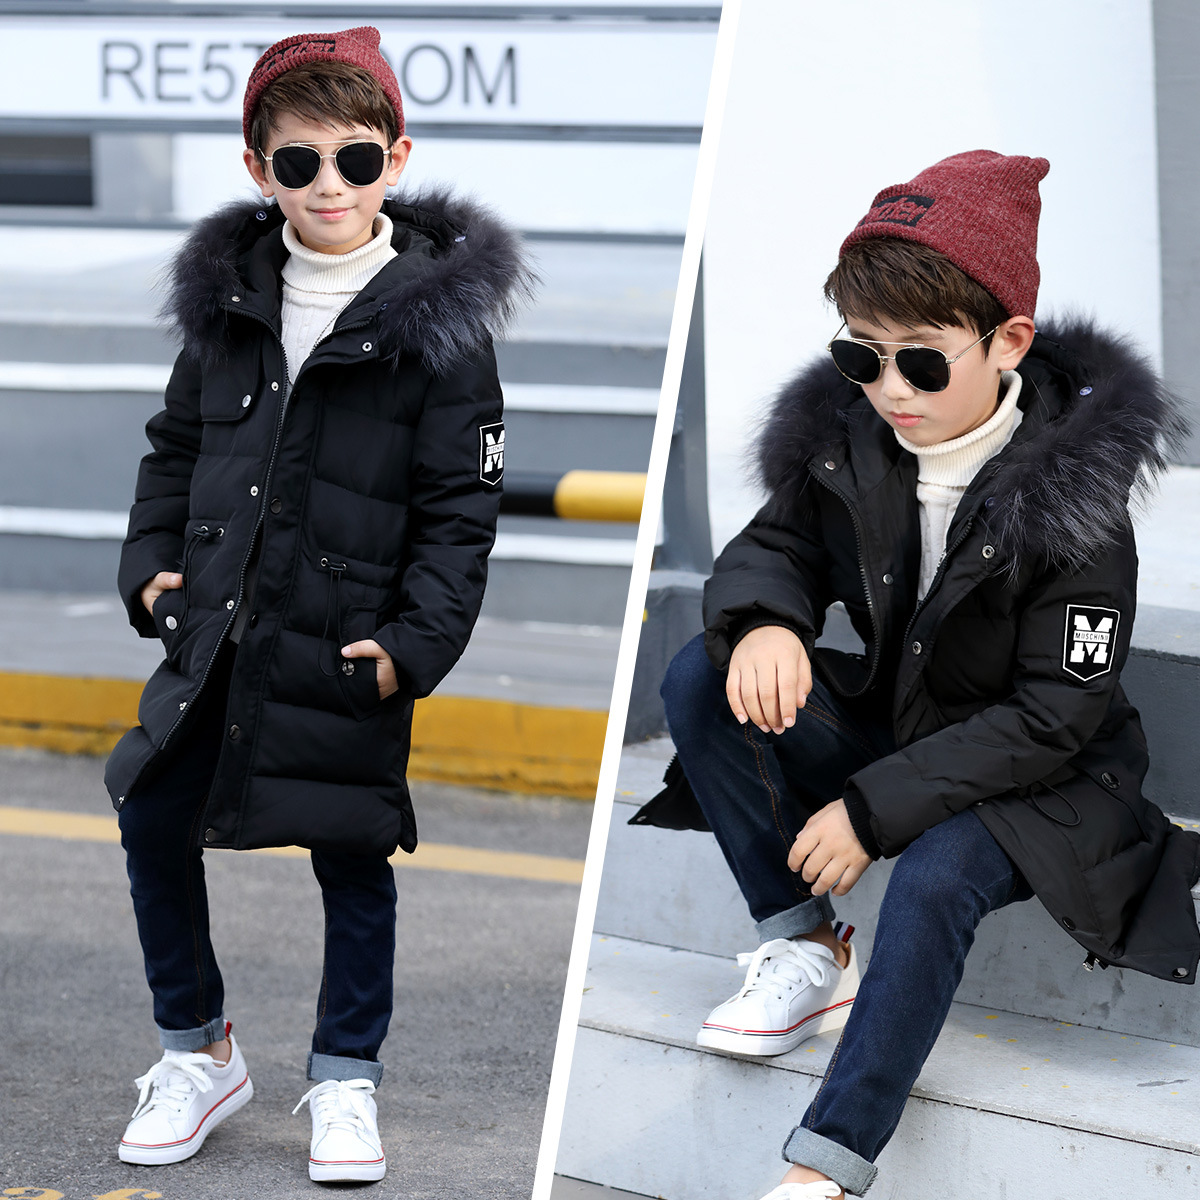 2017 Warm Children's Down Jackets Brand Baby Boy Thick Duck Down Coats Kids Jacket Children Outerwears with Real Fur Cold Winter fashion boys down jackets coats for winter warm 2017 baby boy thick duck down coat real fur children outerwears for cold winter